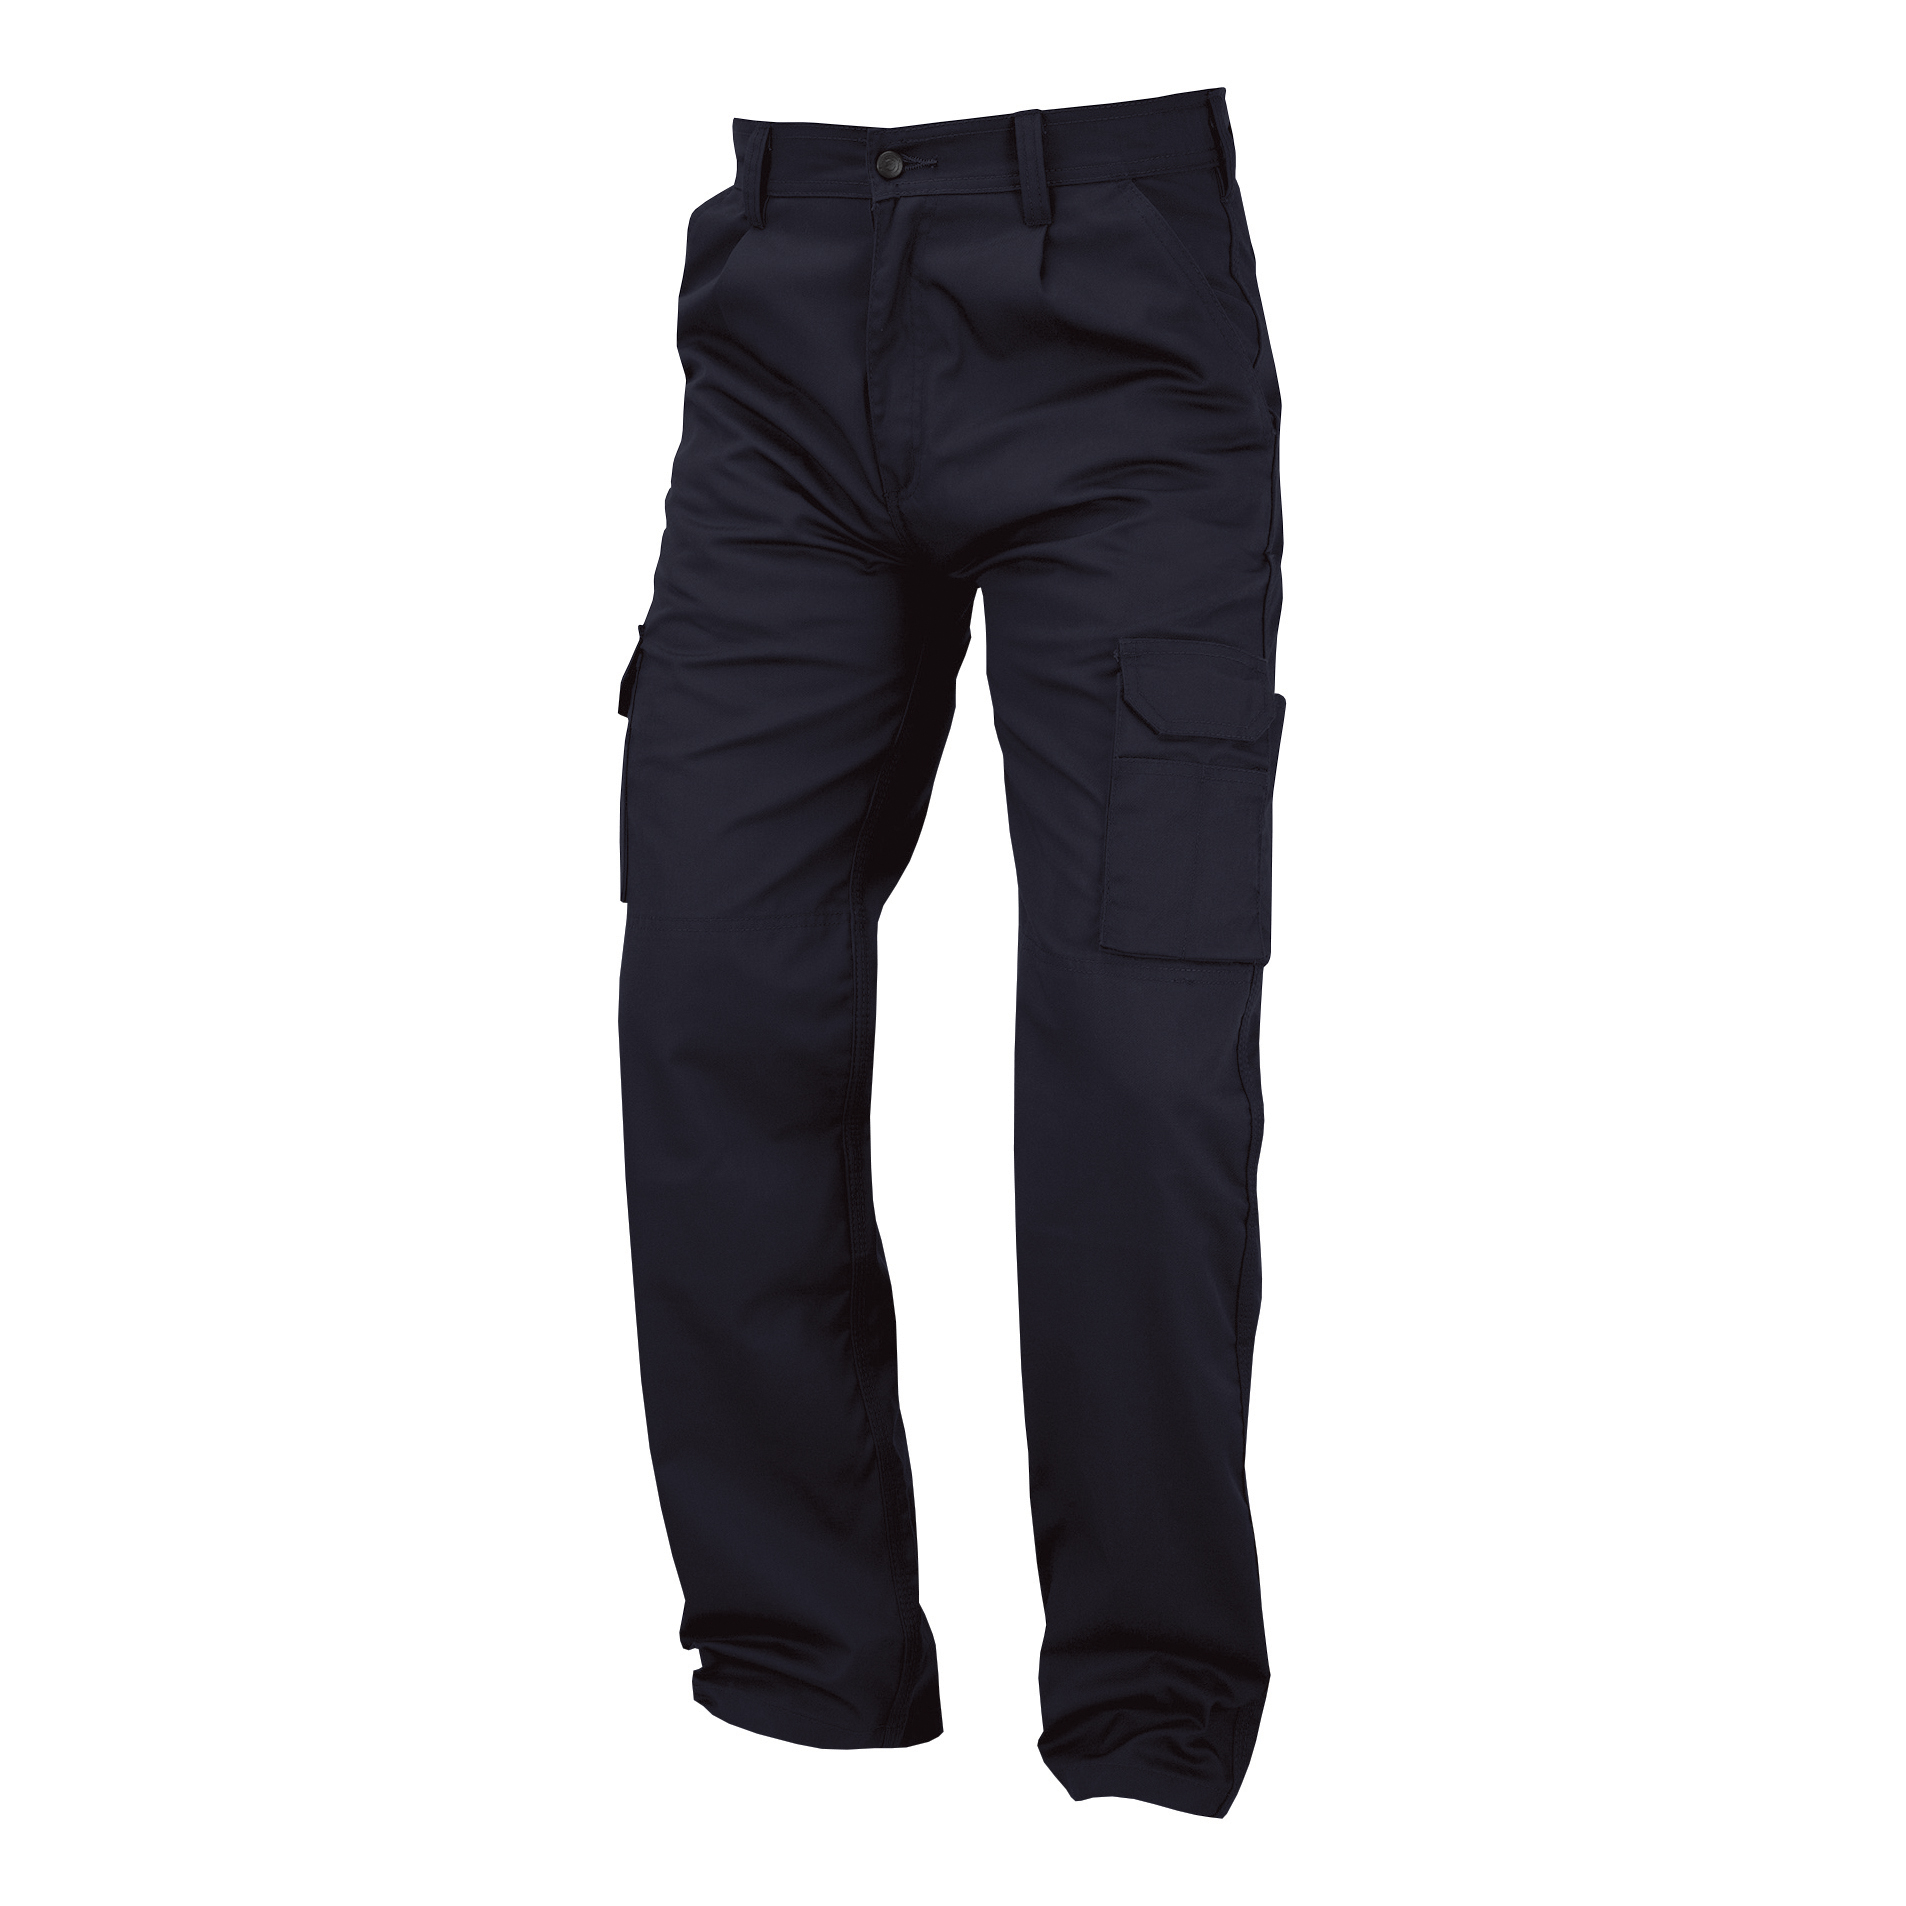 Combat / Cargo Combat Trouser Multi-functional Waist 28in Leg 29in Navy PCTHWN28S *Approx 3 Day Leadtime*